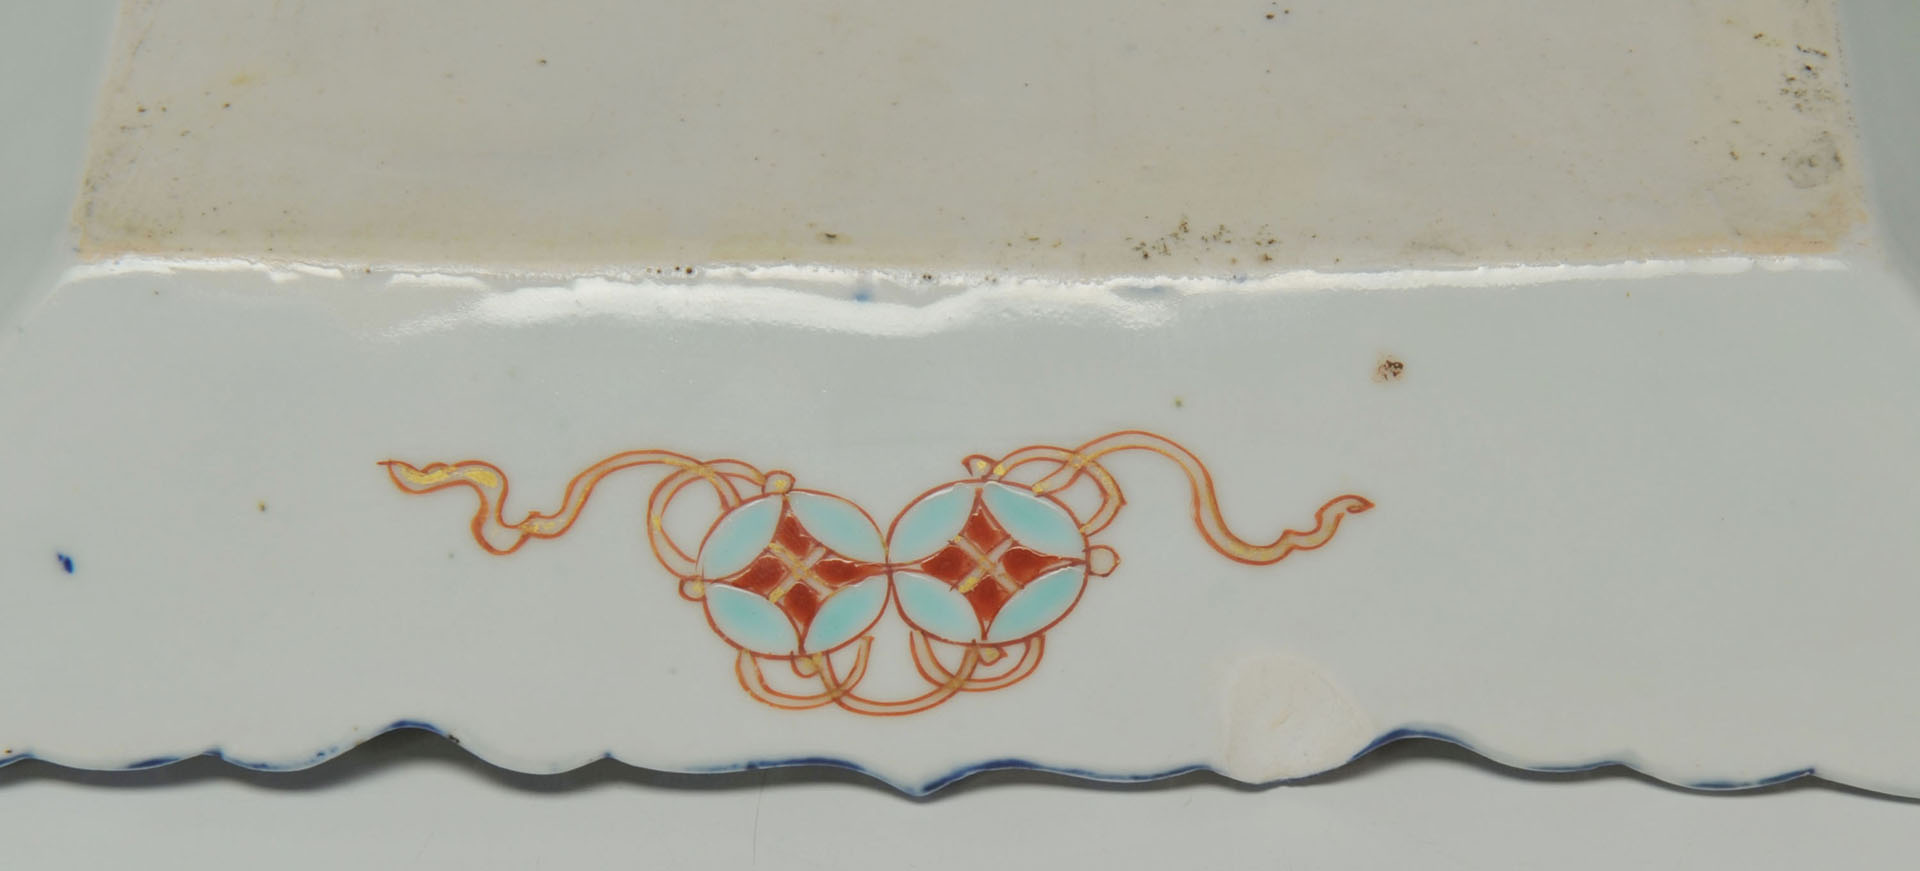 Imari Bowl and Tray, early 20th c.